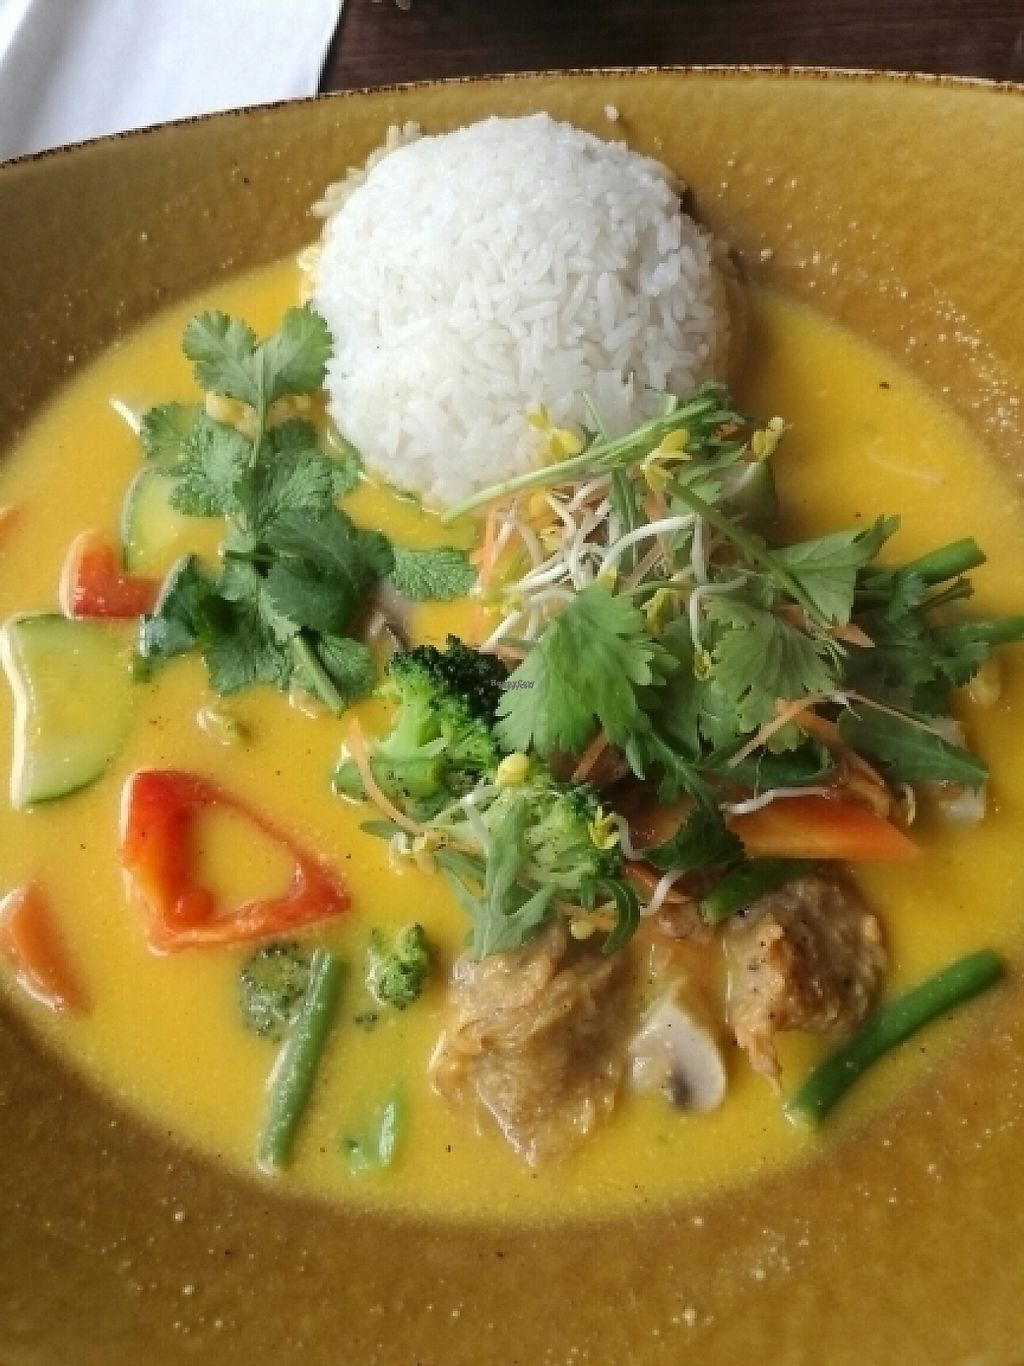 "Photo of Rou Vegetarian  by <a href=""/members/profile/greentea35"">greentea35</a> <br/>mock chicken in mango sauce with coconut milk <br/> April 22, 2017  - <a href='/contact/abuse/image/71031/251108'>Report</a>"